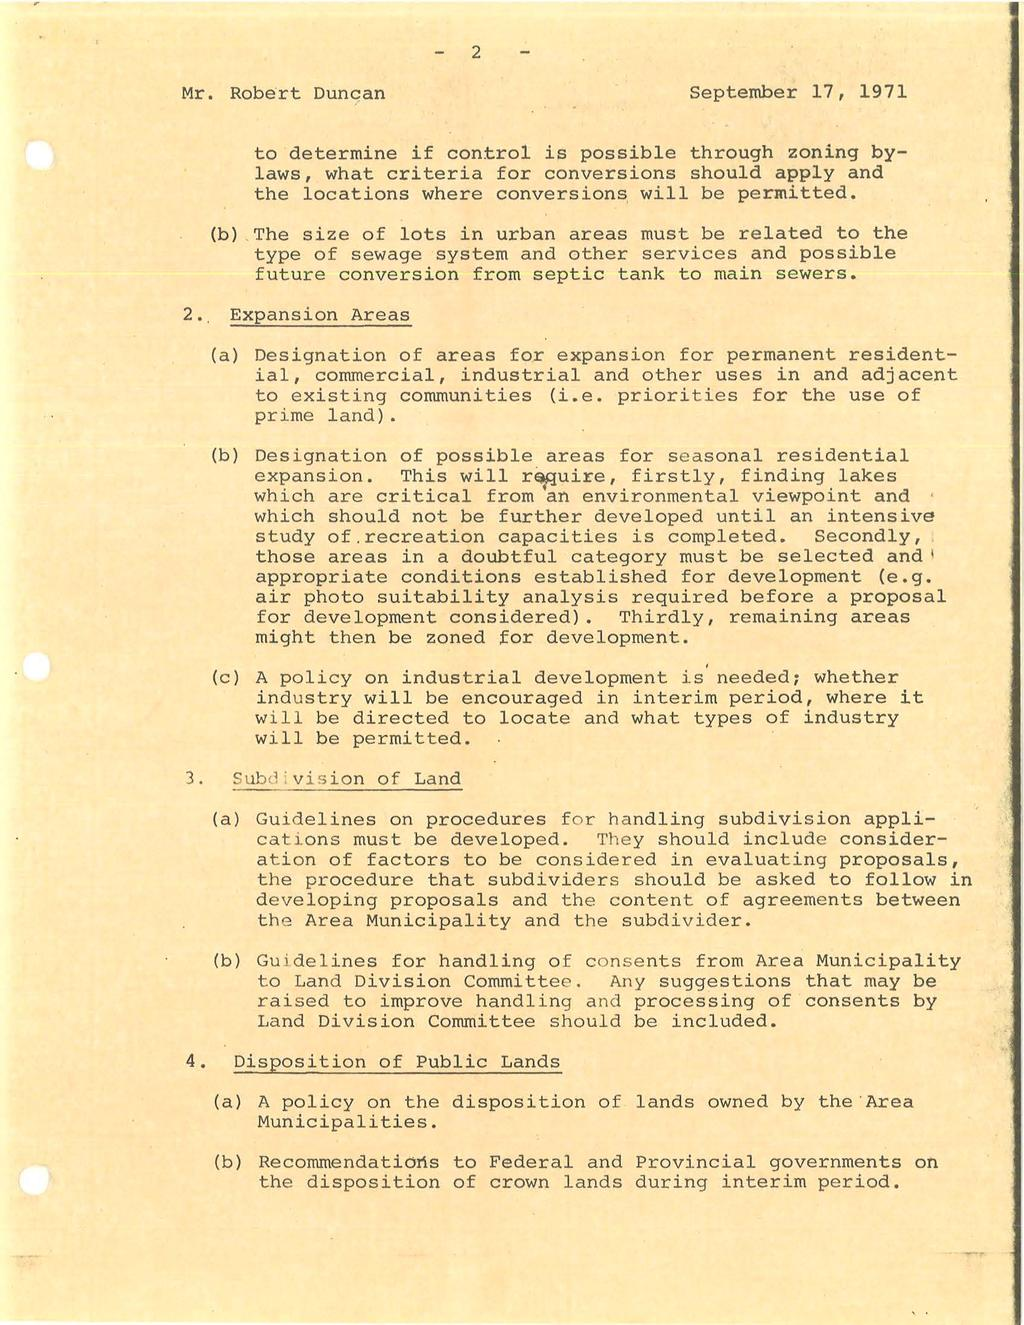 2 Mr. Robert Duncan, September 17, 1971 to determine if control is possible through zoning bylaws, what criteria for conversions should apply and the locations where conversions, will be permitted.